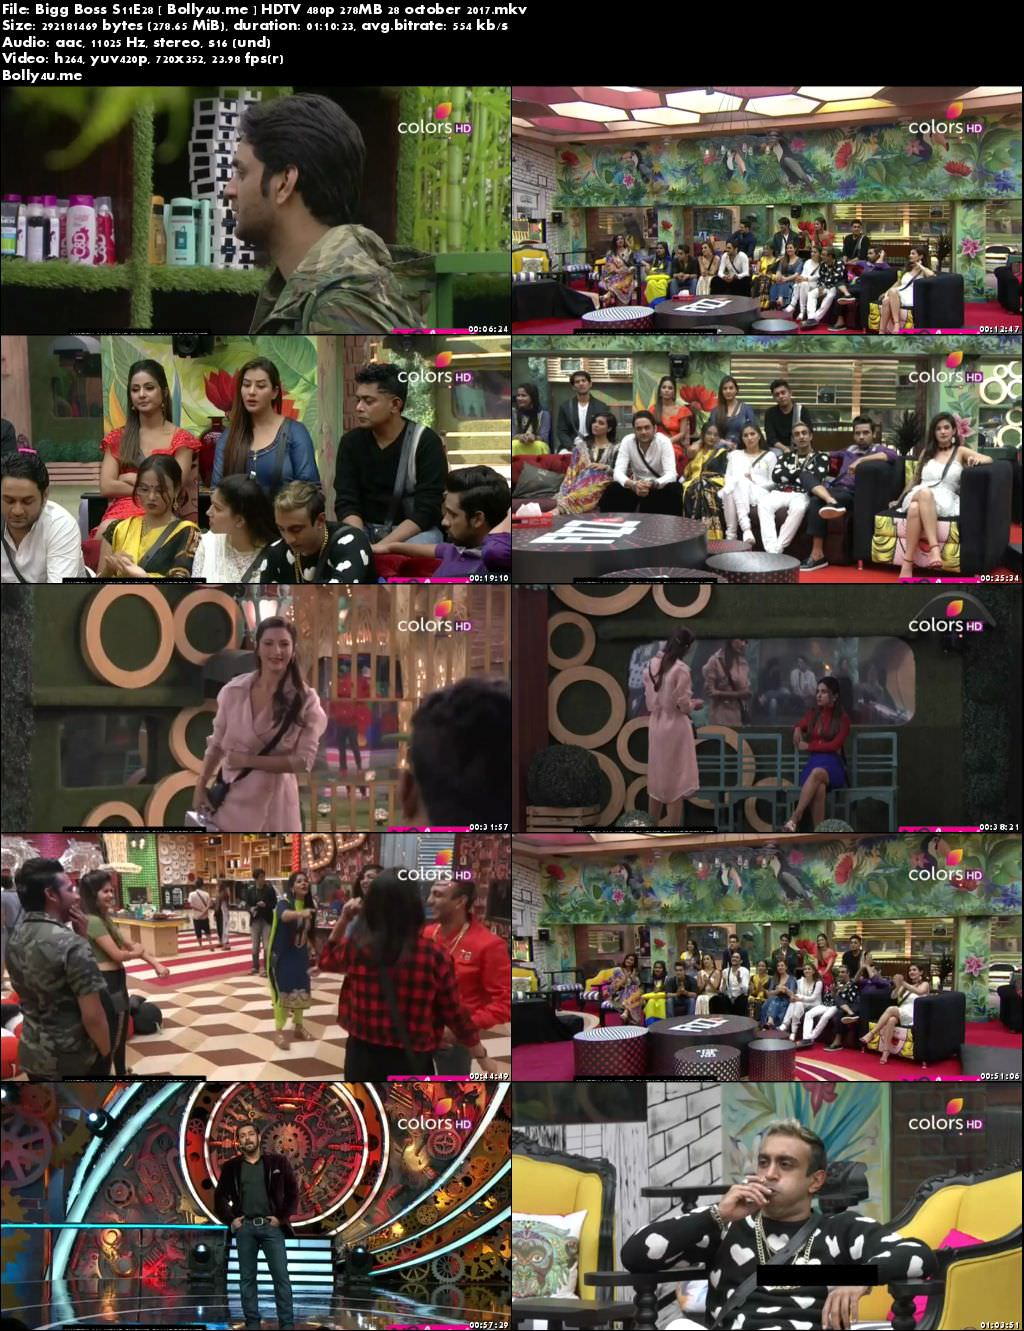 Bigg Boss S11E28 HDTV 480p 250MB 28 October 2017 Download